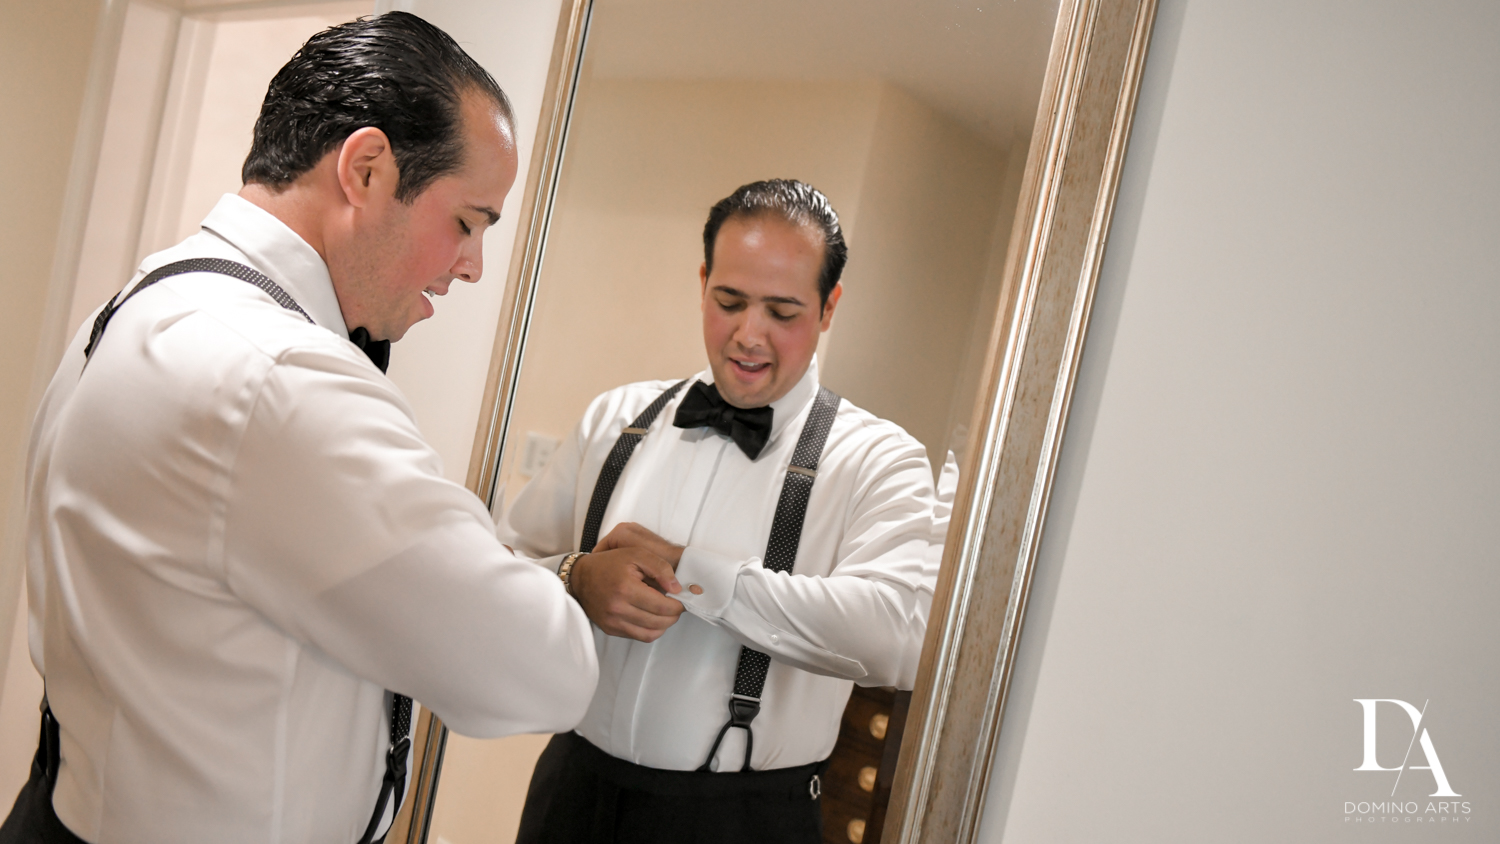 groom getting ready at Elegant Classy Wedding at Trump Doral by Domino Arts Photography